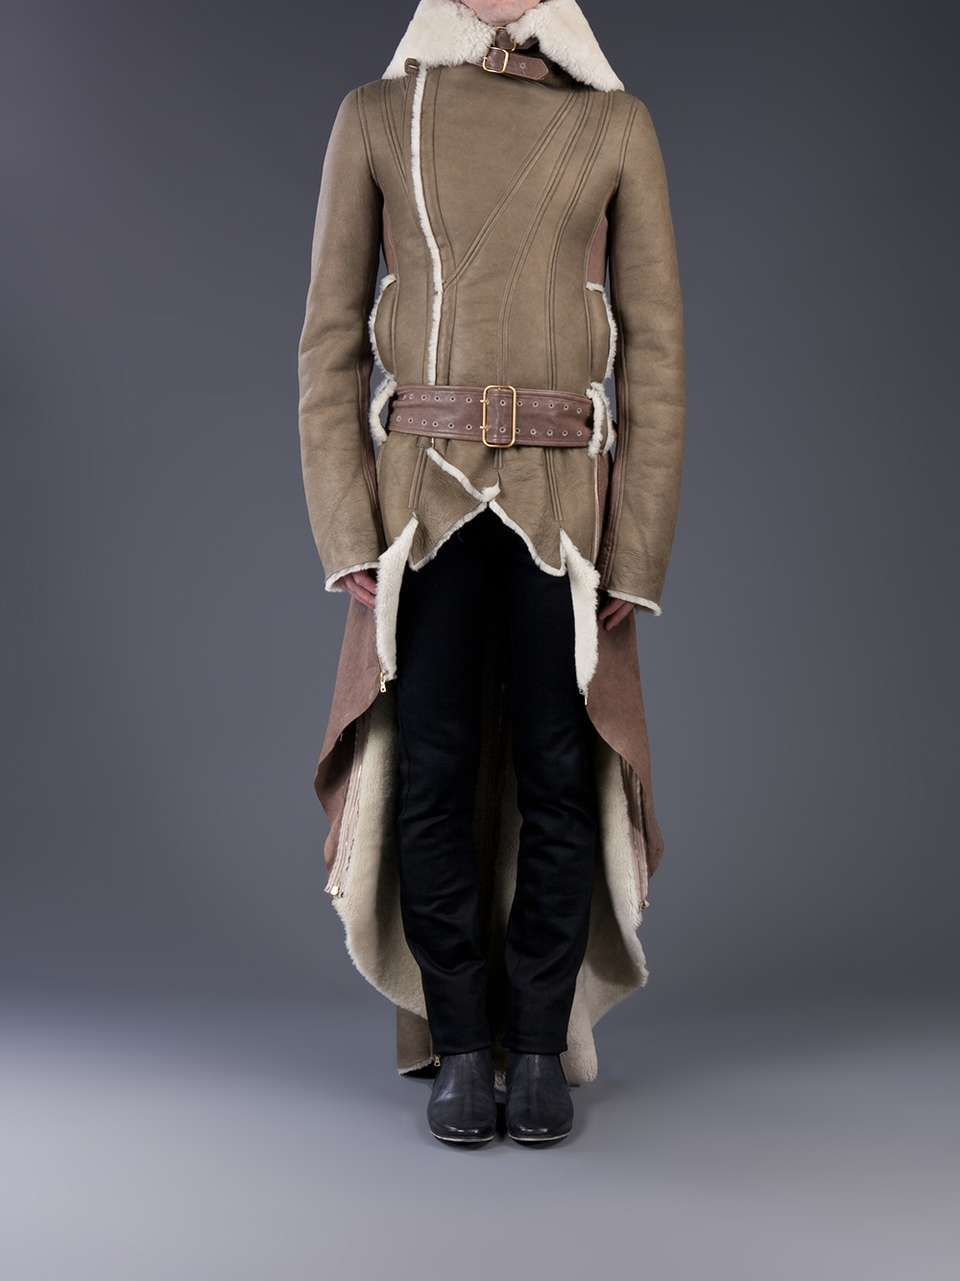 Dominic Louis Shearling trench coat | Auto Accessories | Pinterest ...